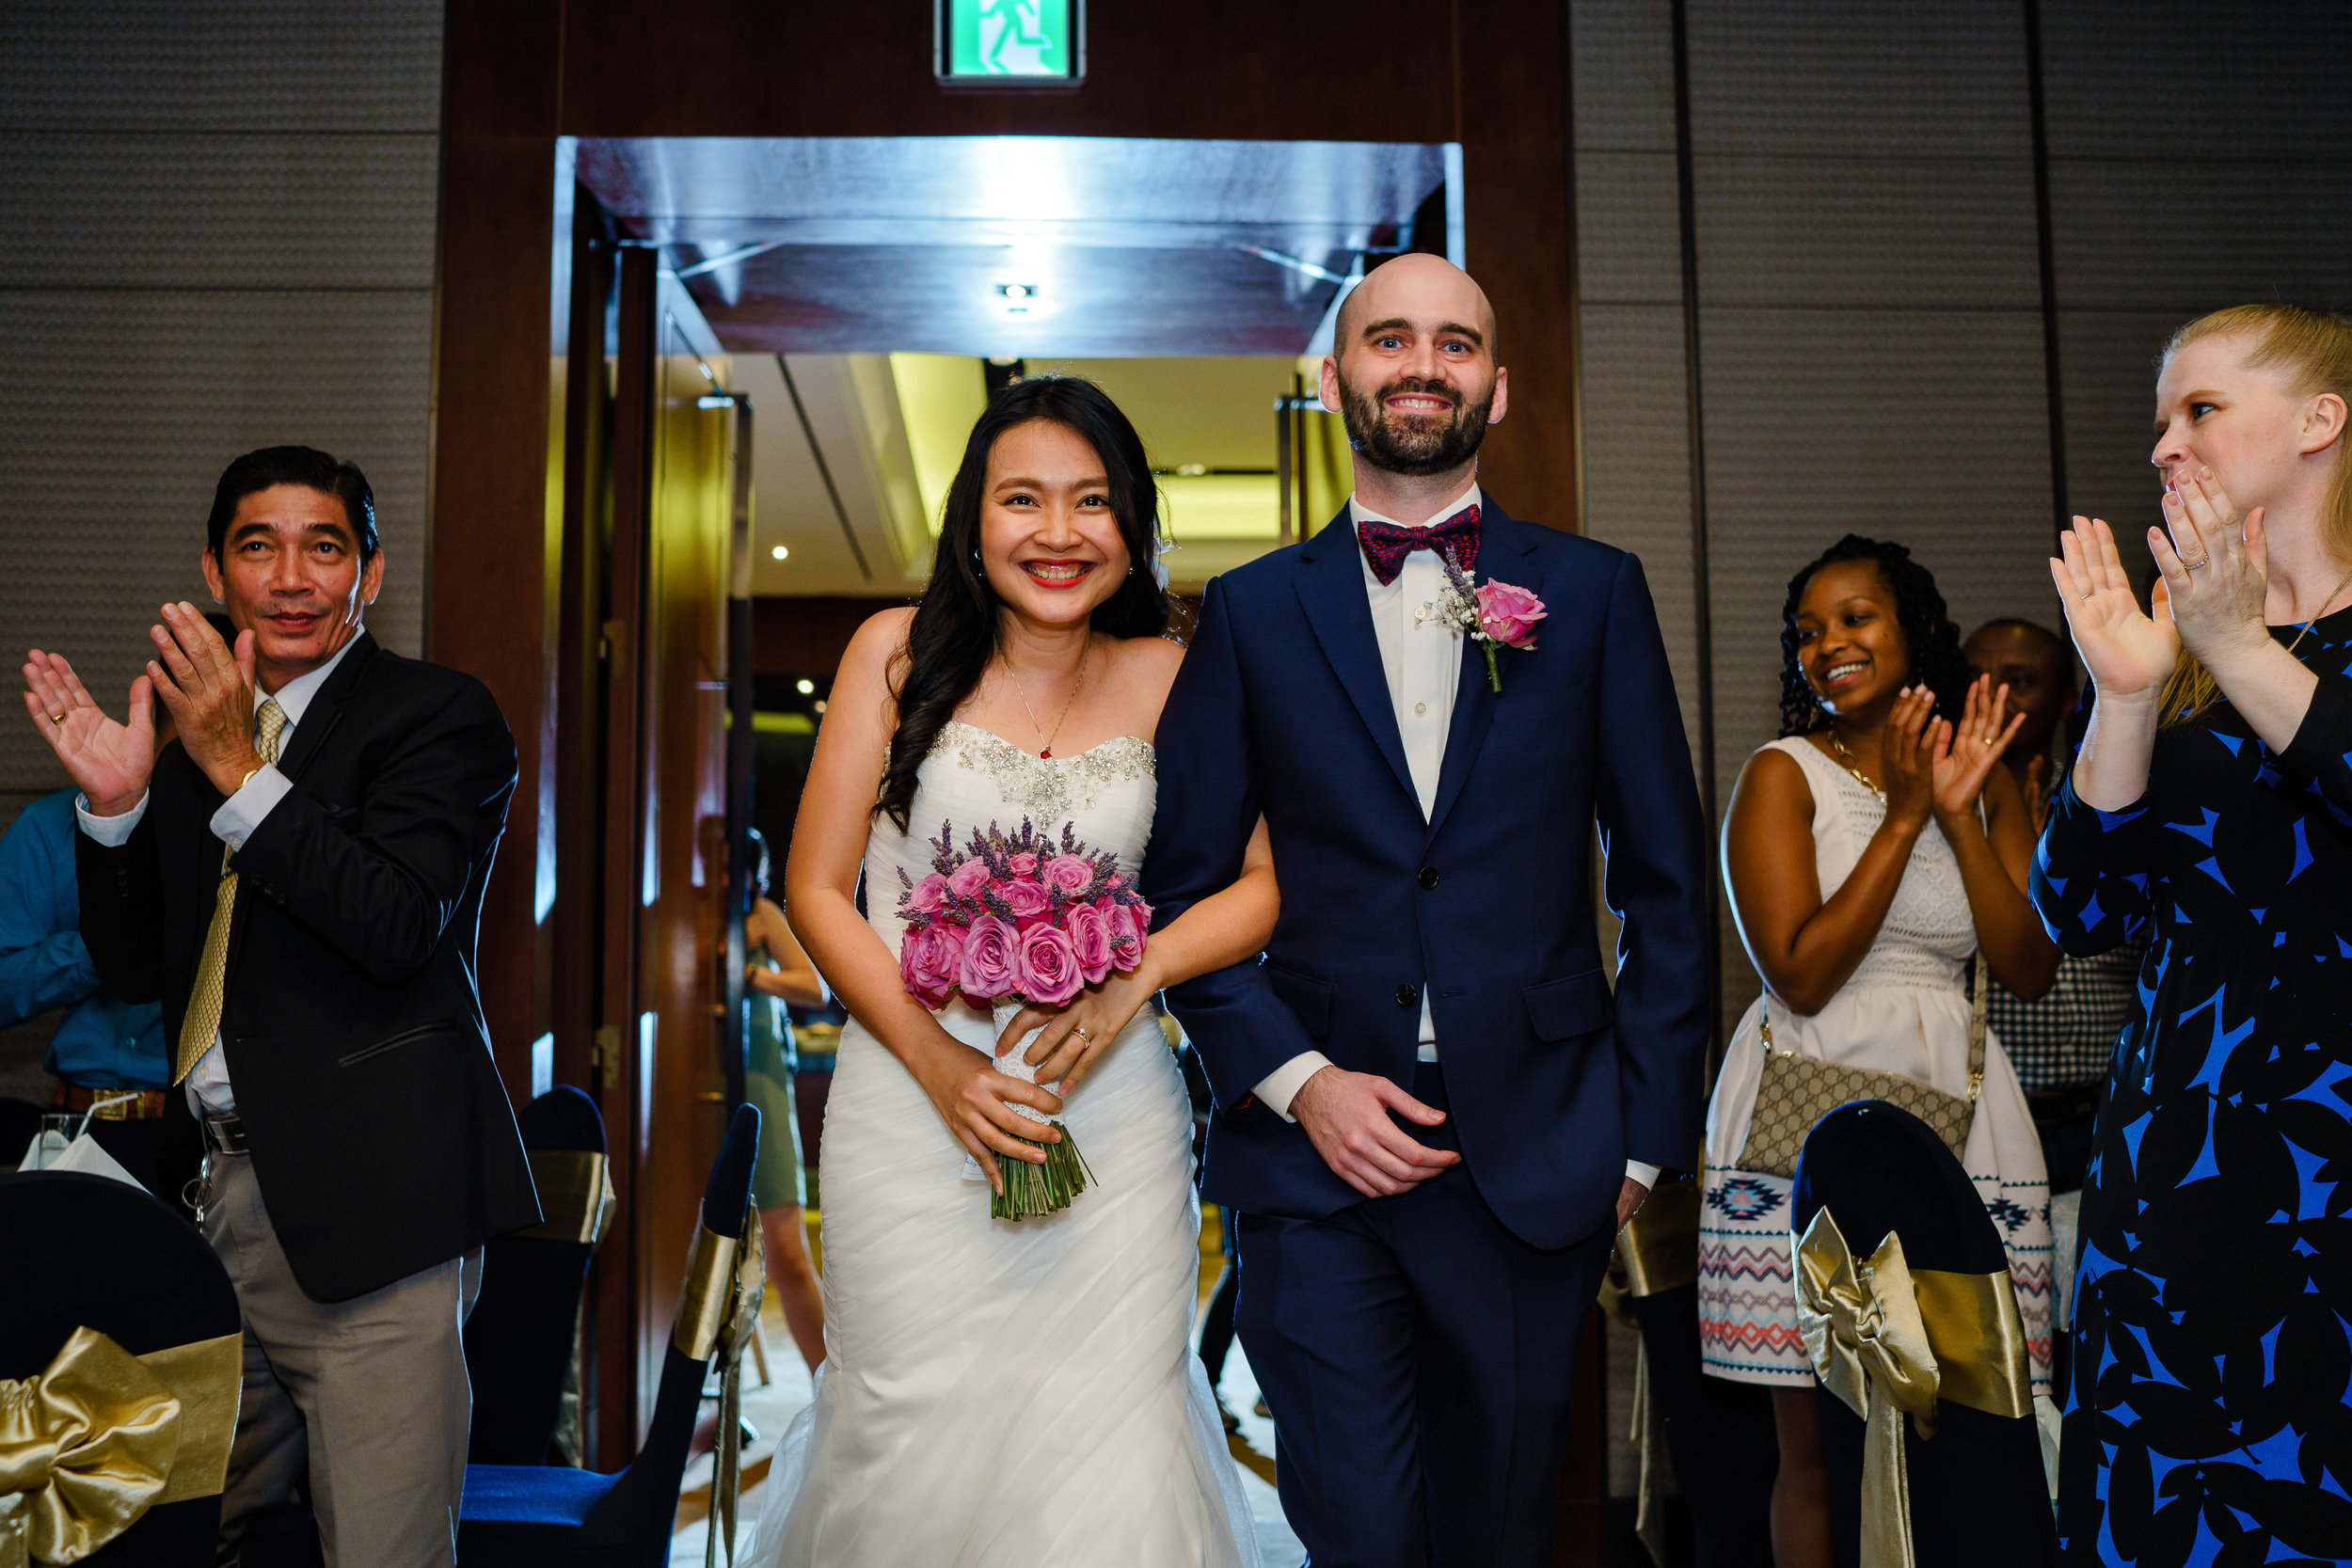 Jon-Hieu-wedding-legend-hotel-saigon-063.JPG